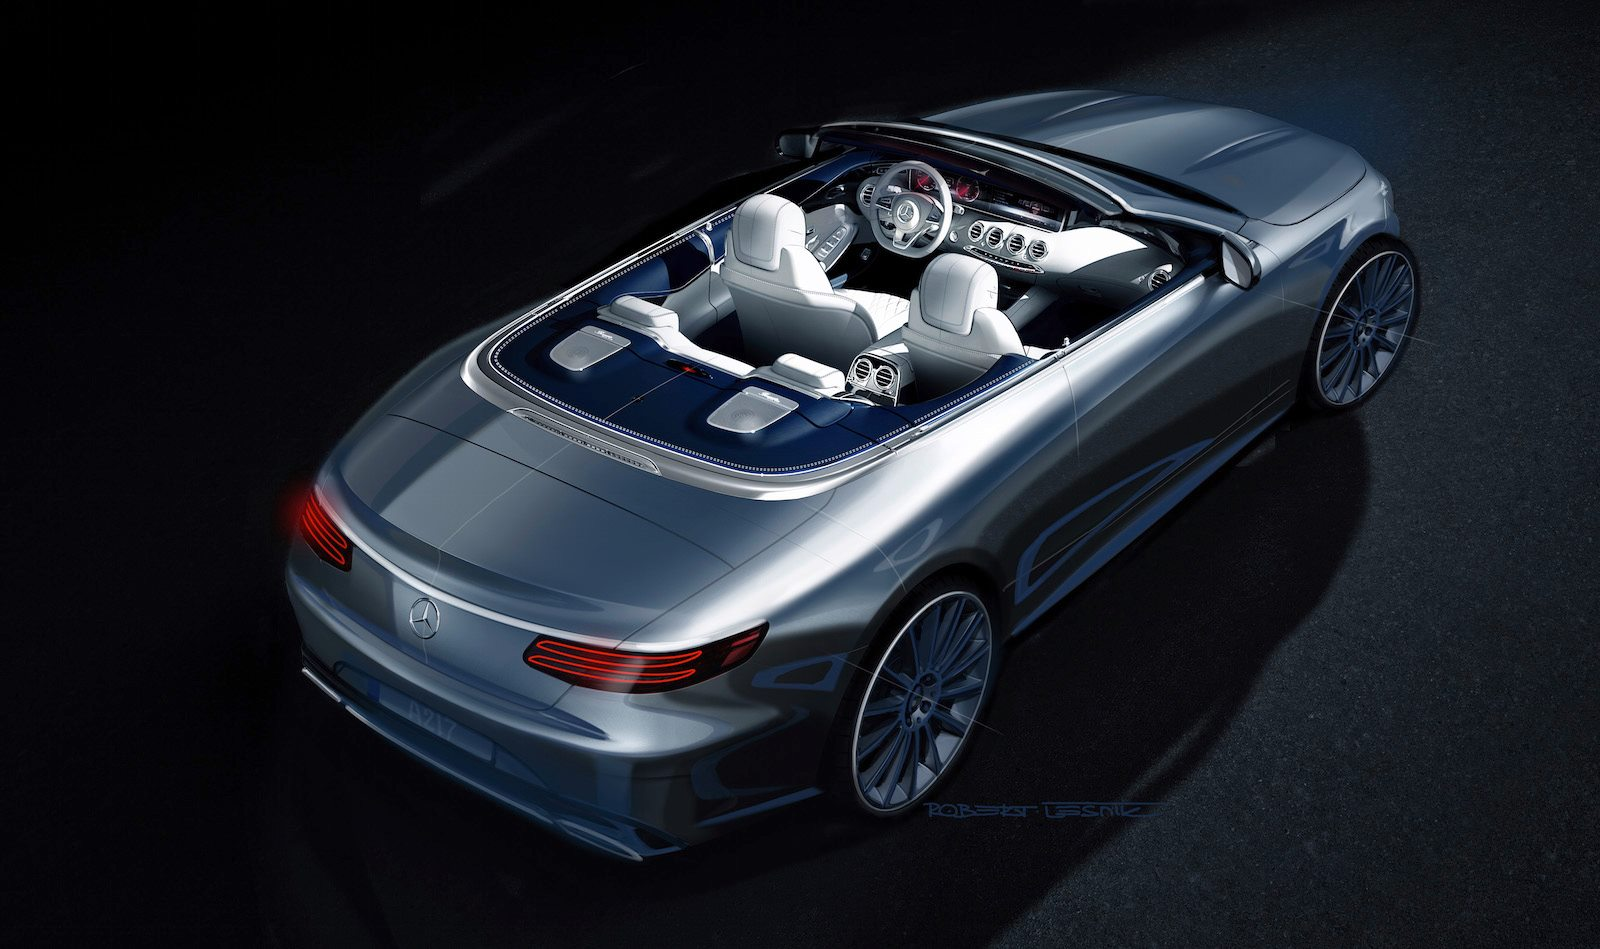 mercedes benz s class cabriolet revealed. Black Bedroom Furniture Sets. Home Design Ideas